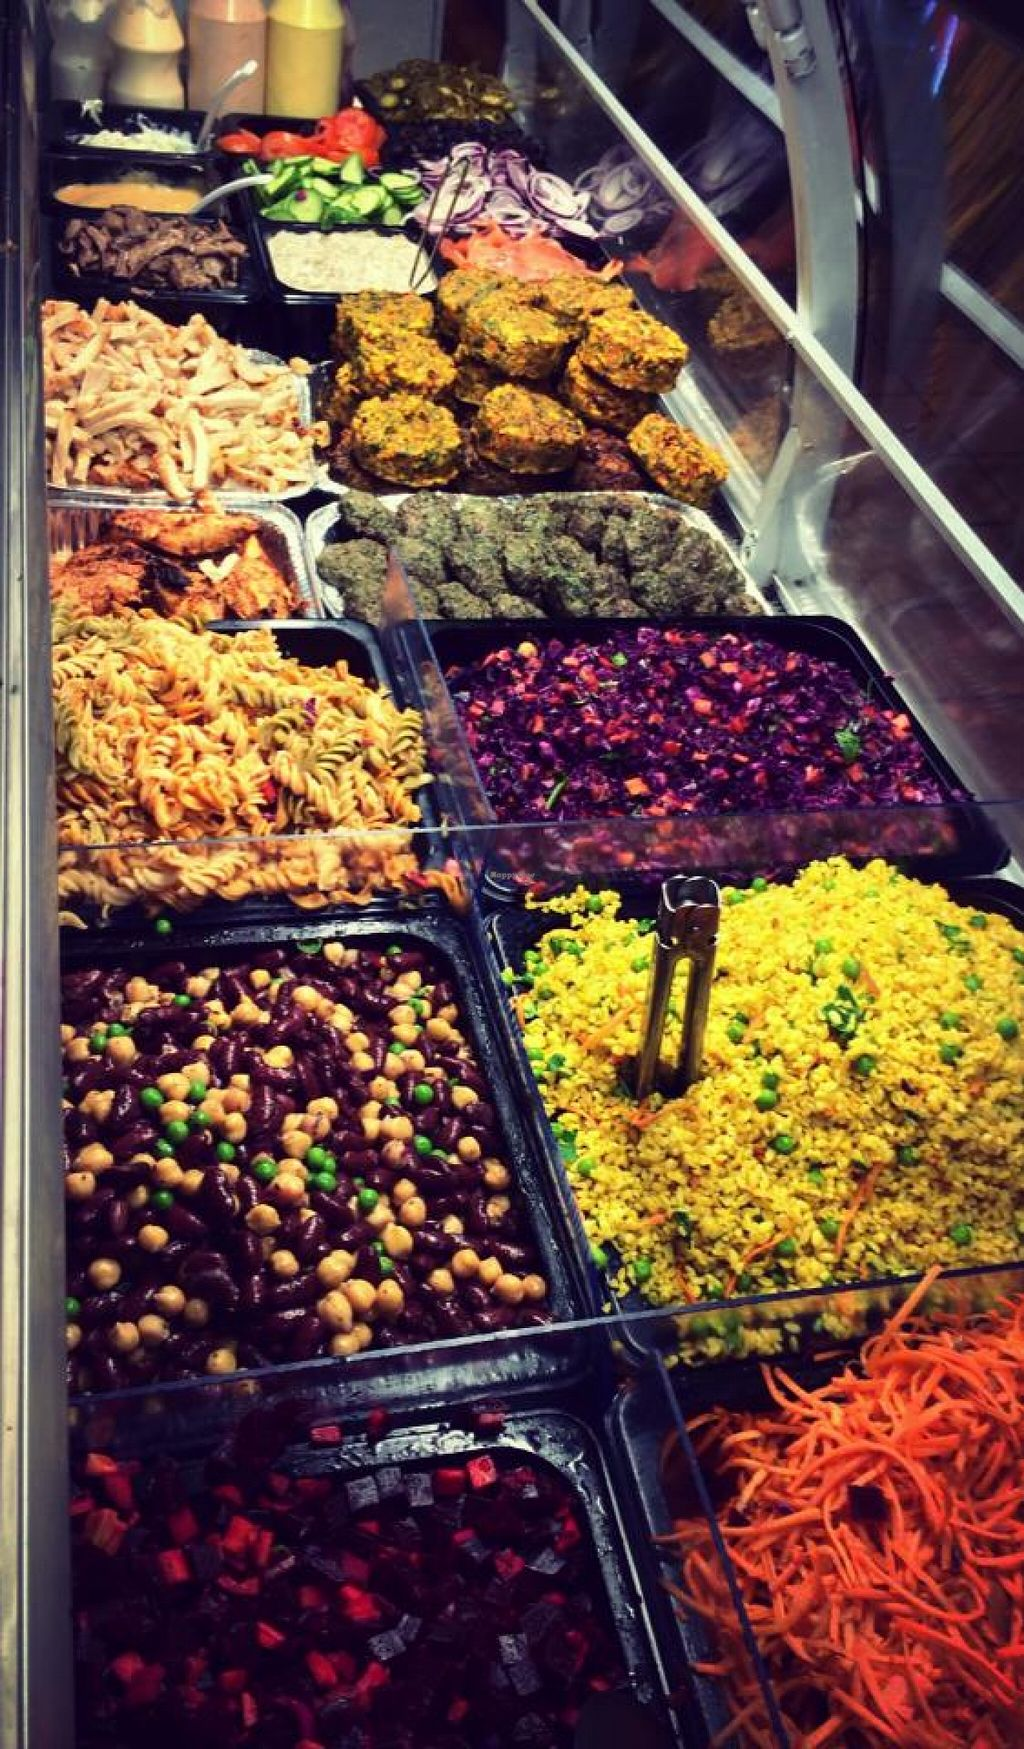 """Photo of HAPS  by <a href=""""/members/profile/Milagv"""">Milagv</a> <br/>Variety of fresh salads. The salads sometimes change, but there is always hummus and tzatziki :) <br/> October 10, 2015  - <a href='/contact/abuse/image/64350/120902'>Report</a>"""